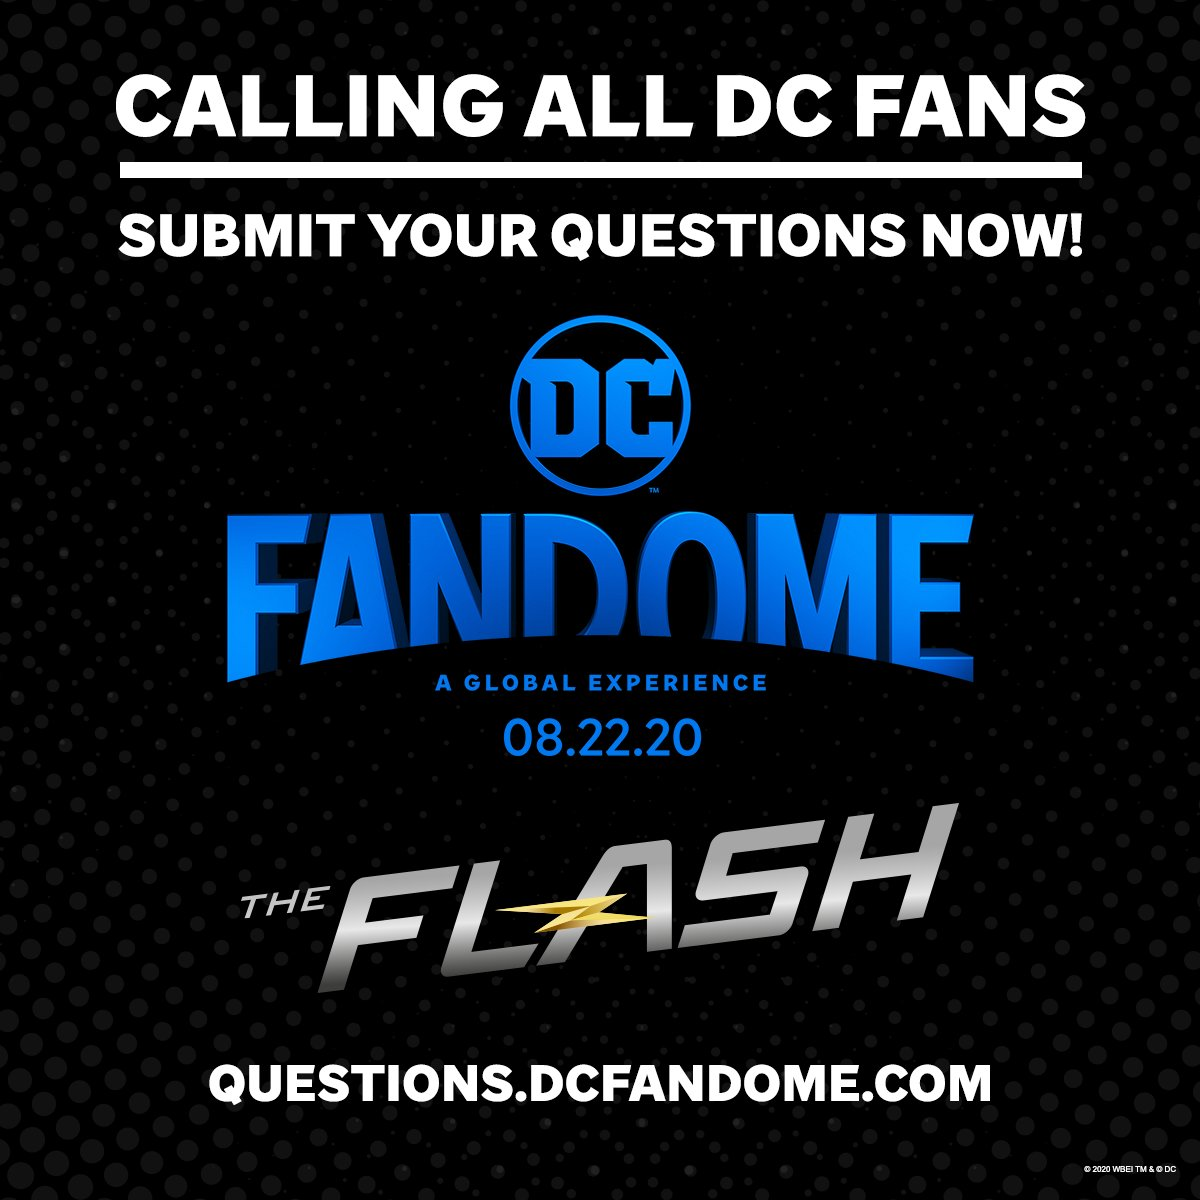 You've got questions! We've got answers. Submit your questions now about the DC Multiverse, and see if they're answered during #DCFanDome: questions.dcfandome.com